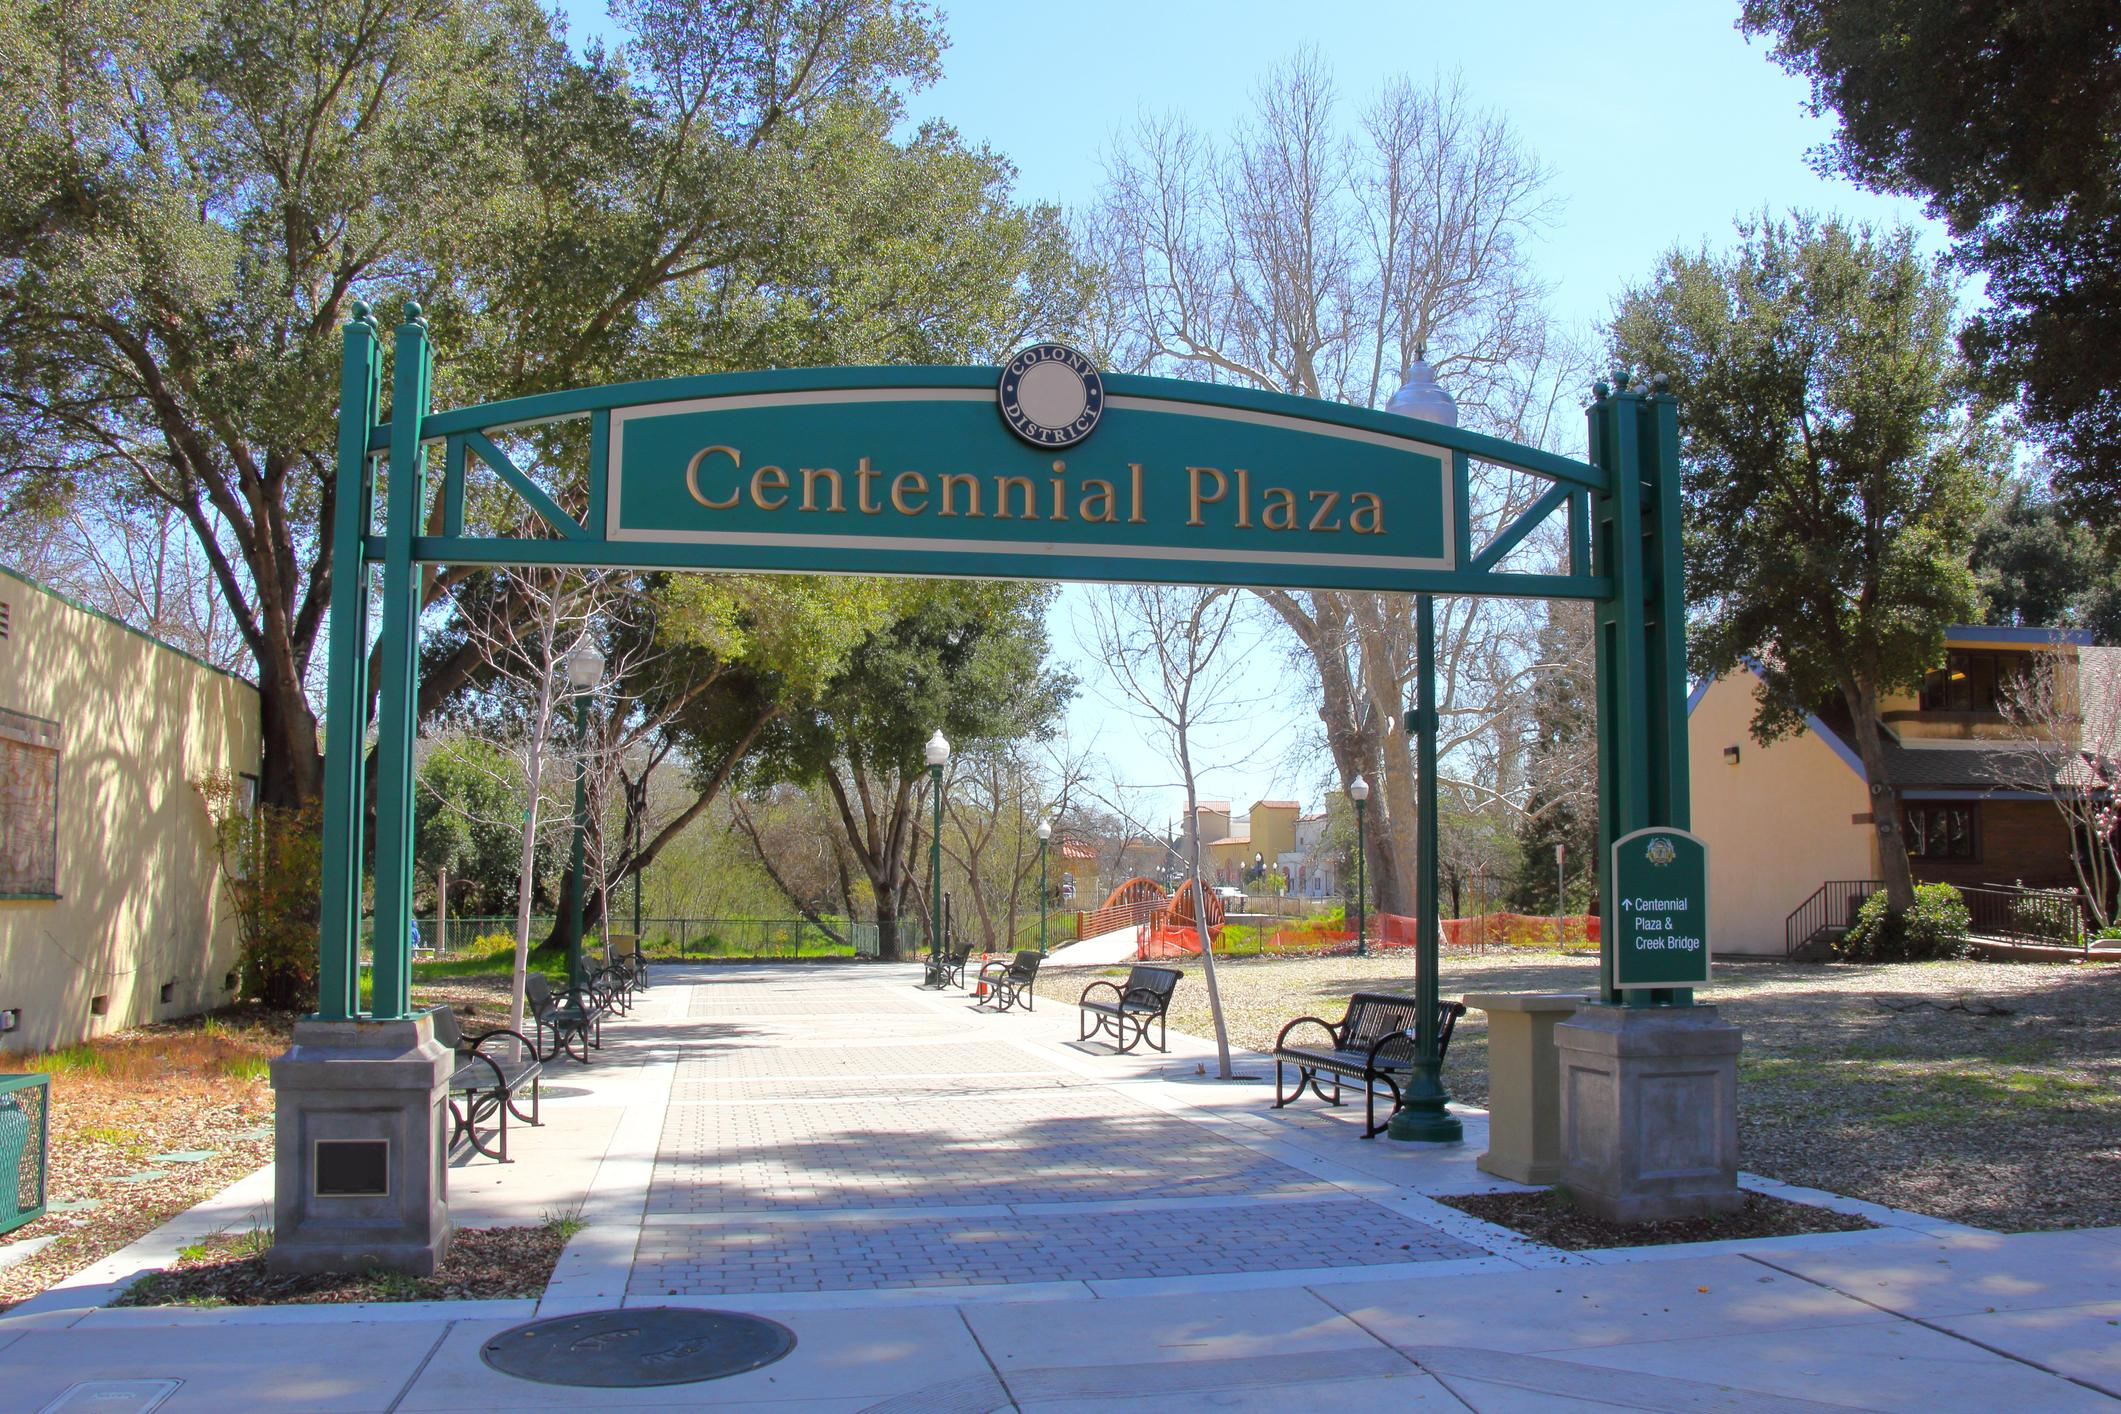 Centennial Plaza connects Sunken Gardens to the heart of downtown.